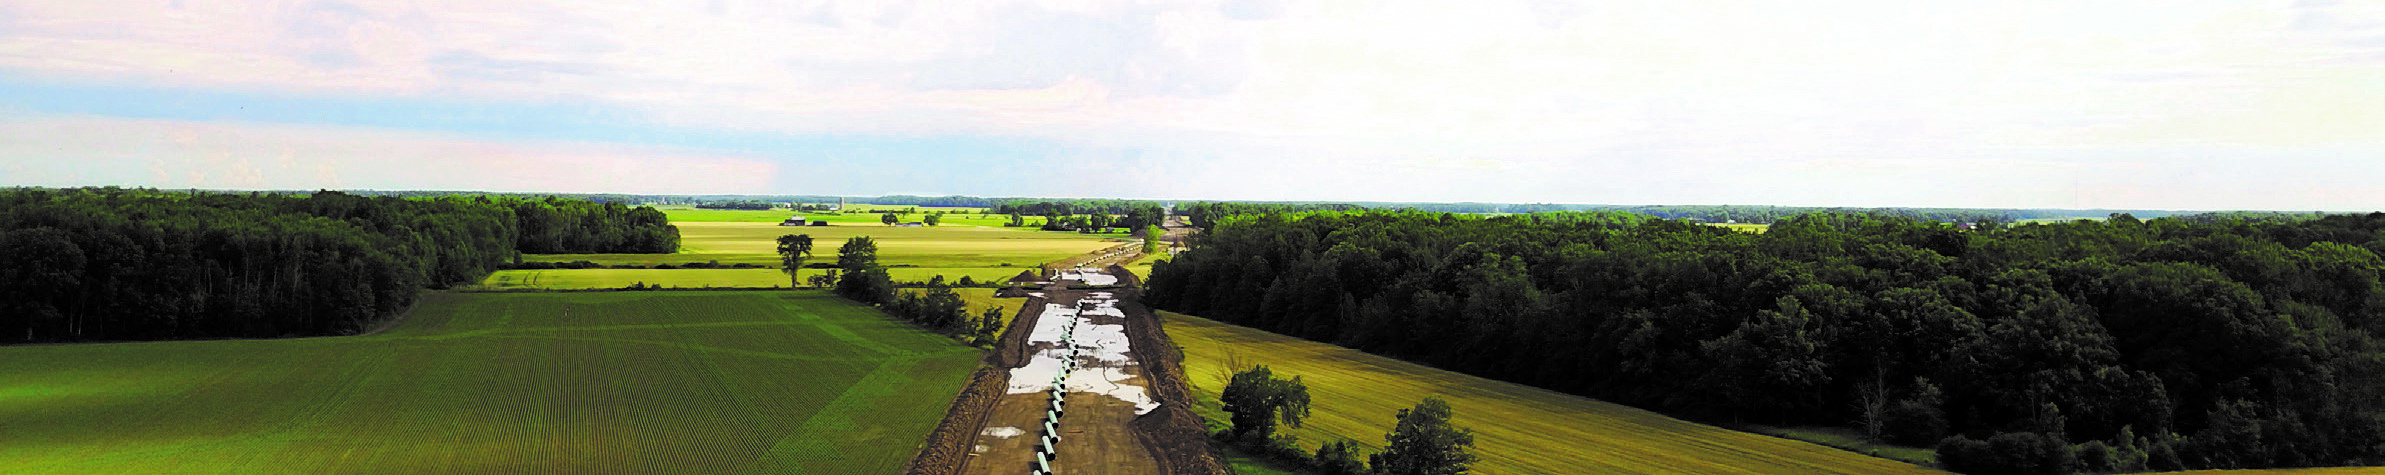 Enbridge's Kingsville Transmission Reinforcement Project involved construction of a 19-kilometre, 20-inch-diameter natural gas pipeline from the town of Lakeshore to the town of Kingsville in southwestern Ontario.